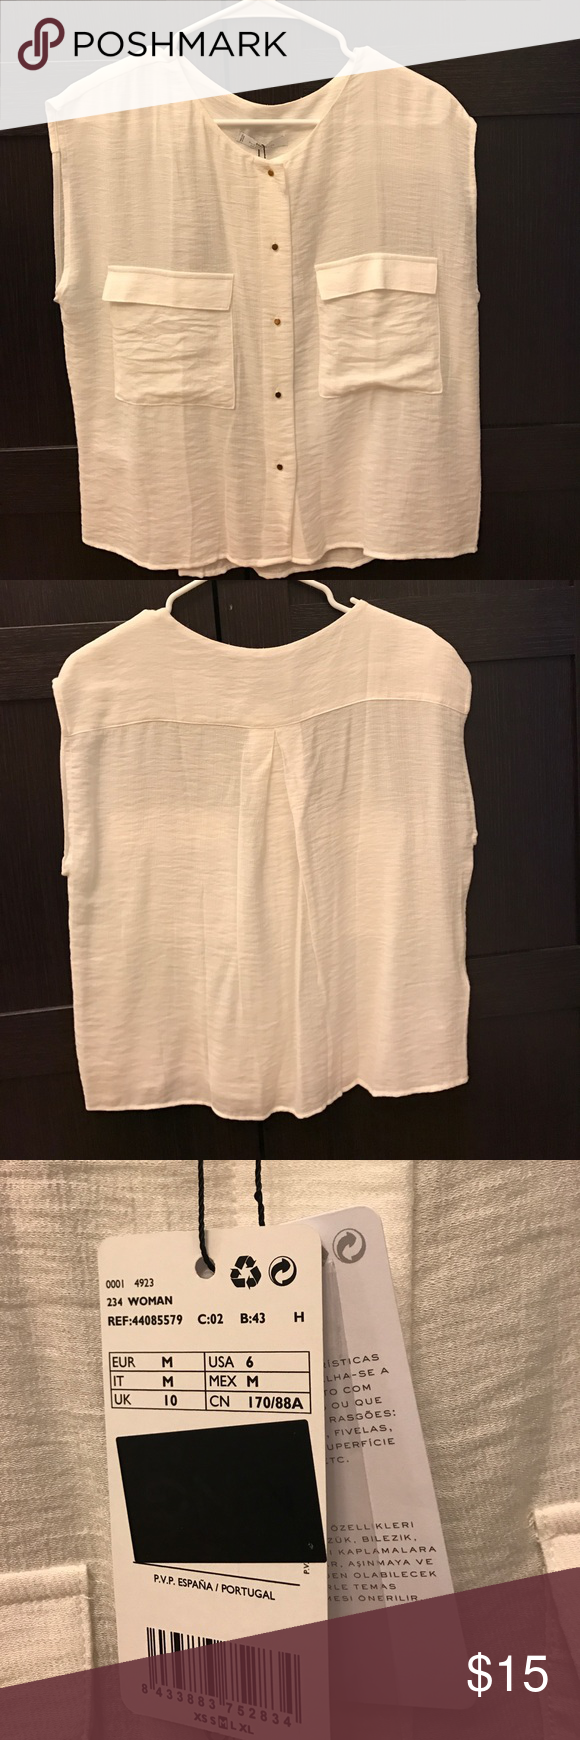 Mango MNG Suit Collection gauzey sleeveless blouse Lightweight sleeveless top from Mango MNG. Perfect for summer. Tiny gold buttons, two front pockets. New with tags. Mango Tops Blouses